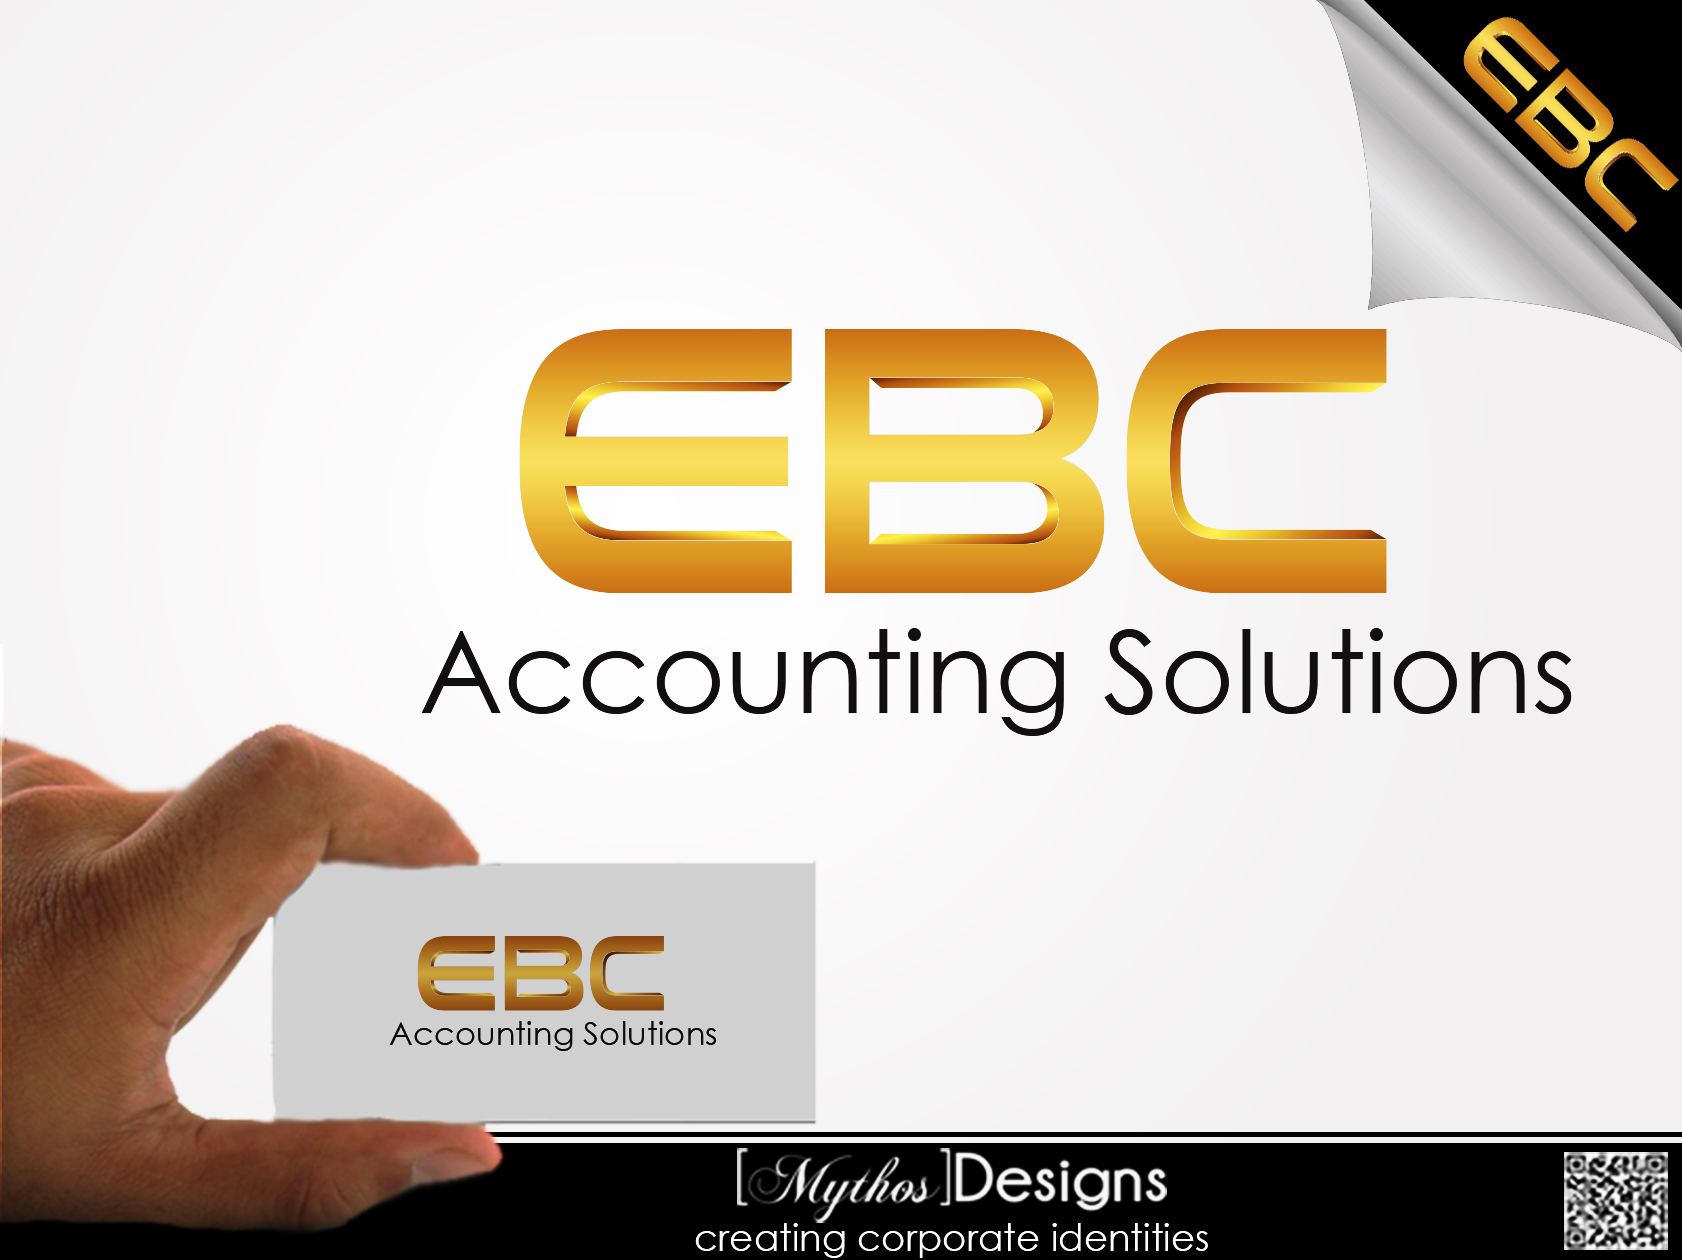 Logo Design by Mythos Designs - Entry No. 207 in the Logo Design Contest New Logo Design for EBC Accounting Solutions.